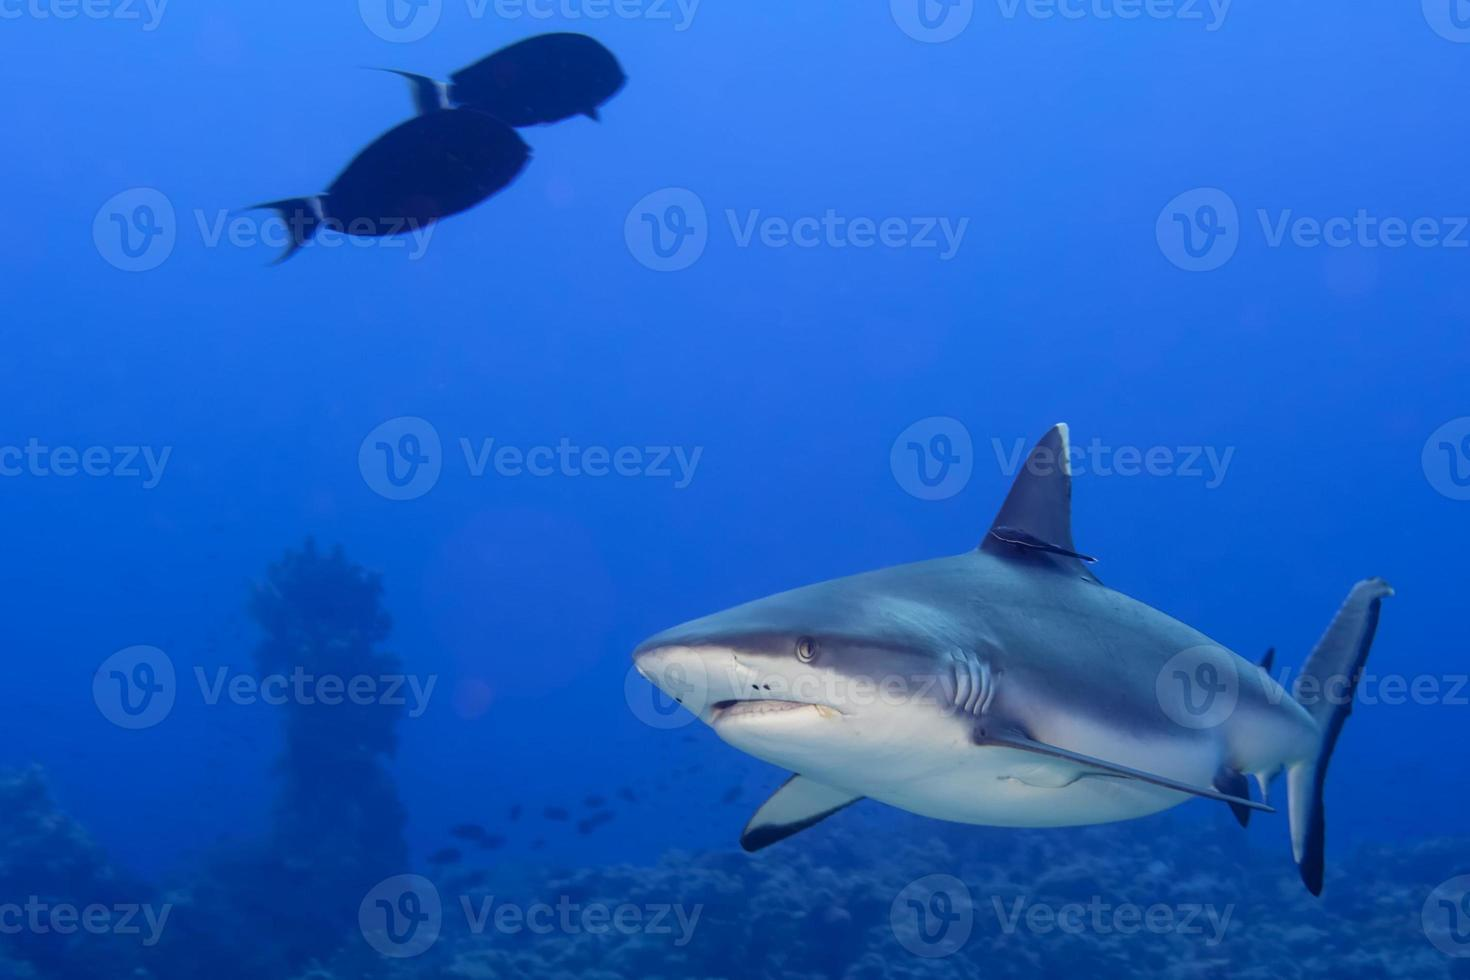 Grey shark jaws ready to attack underwater close up portrait photo